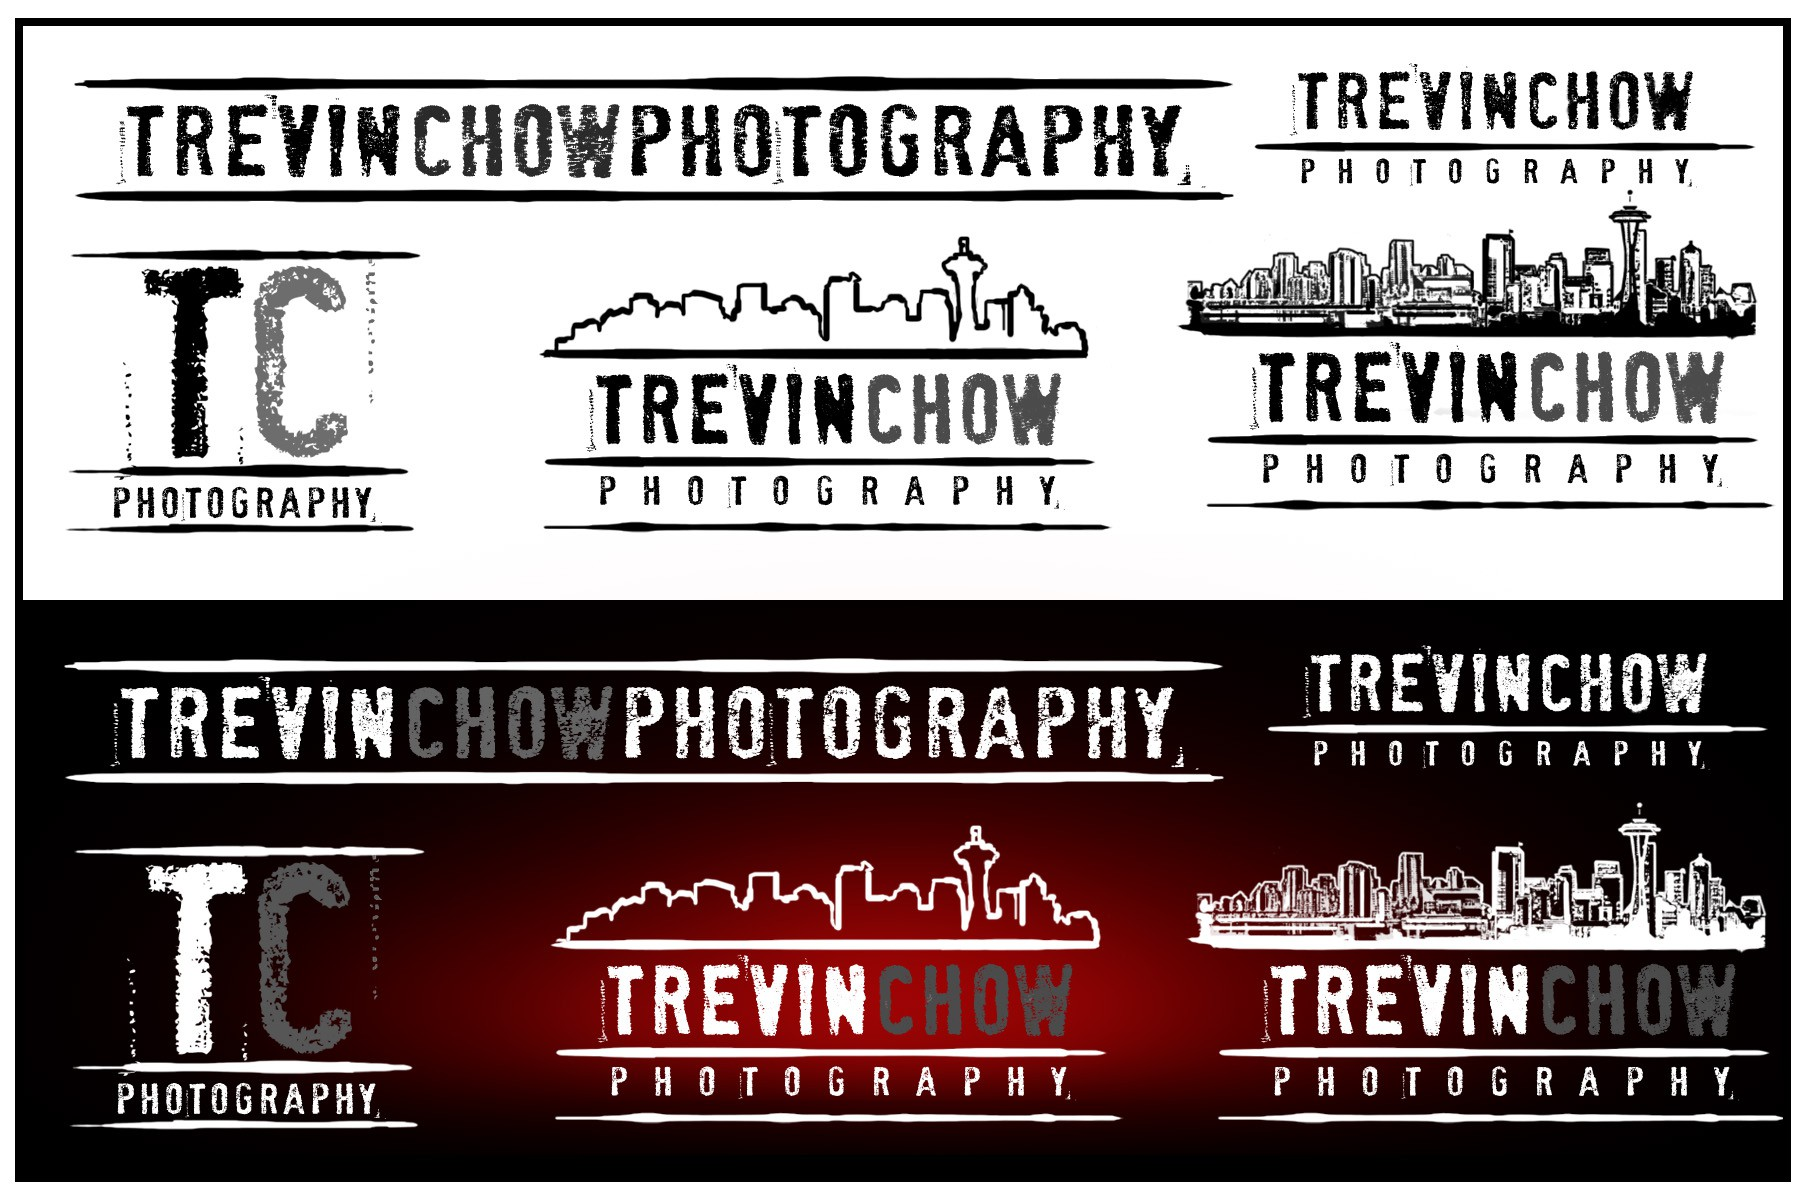 Photographer needs a logo to be the cornerstone of his marketing